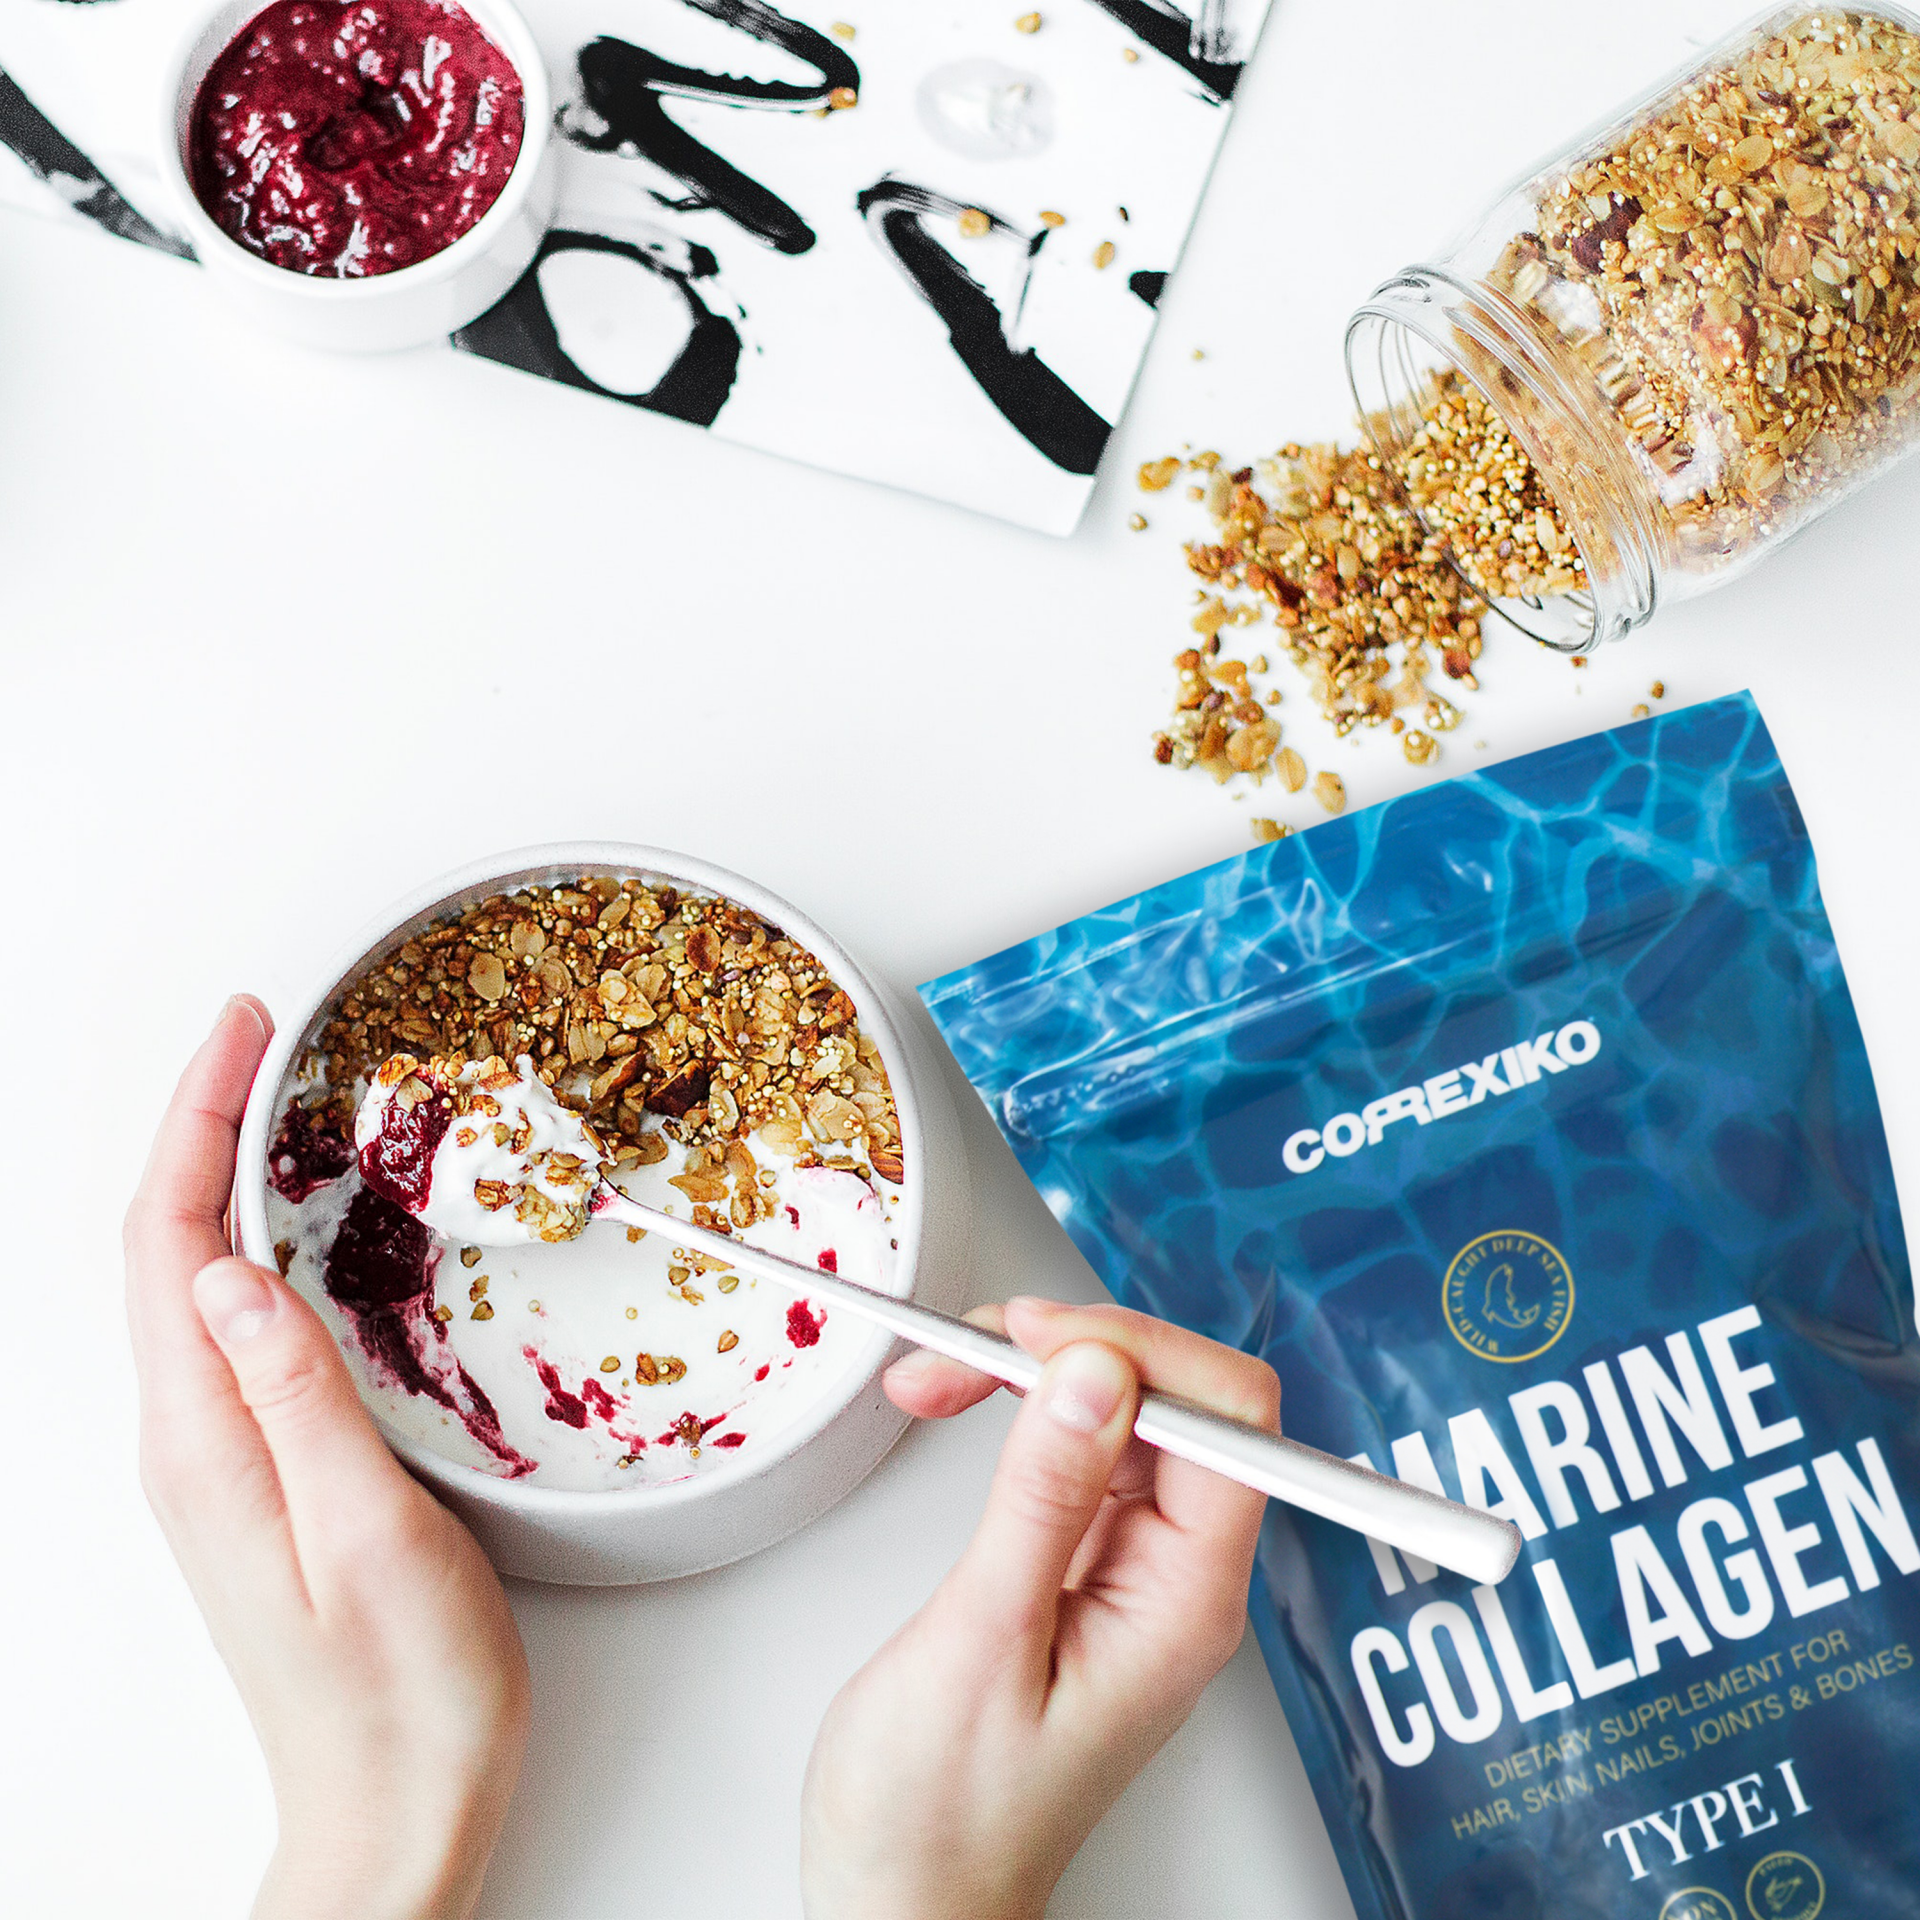 26 Foods That Boost Collagen Levels   Correxiko - The Collagen Experts